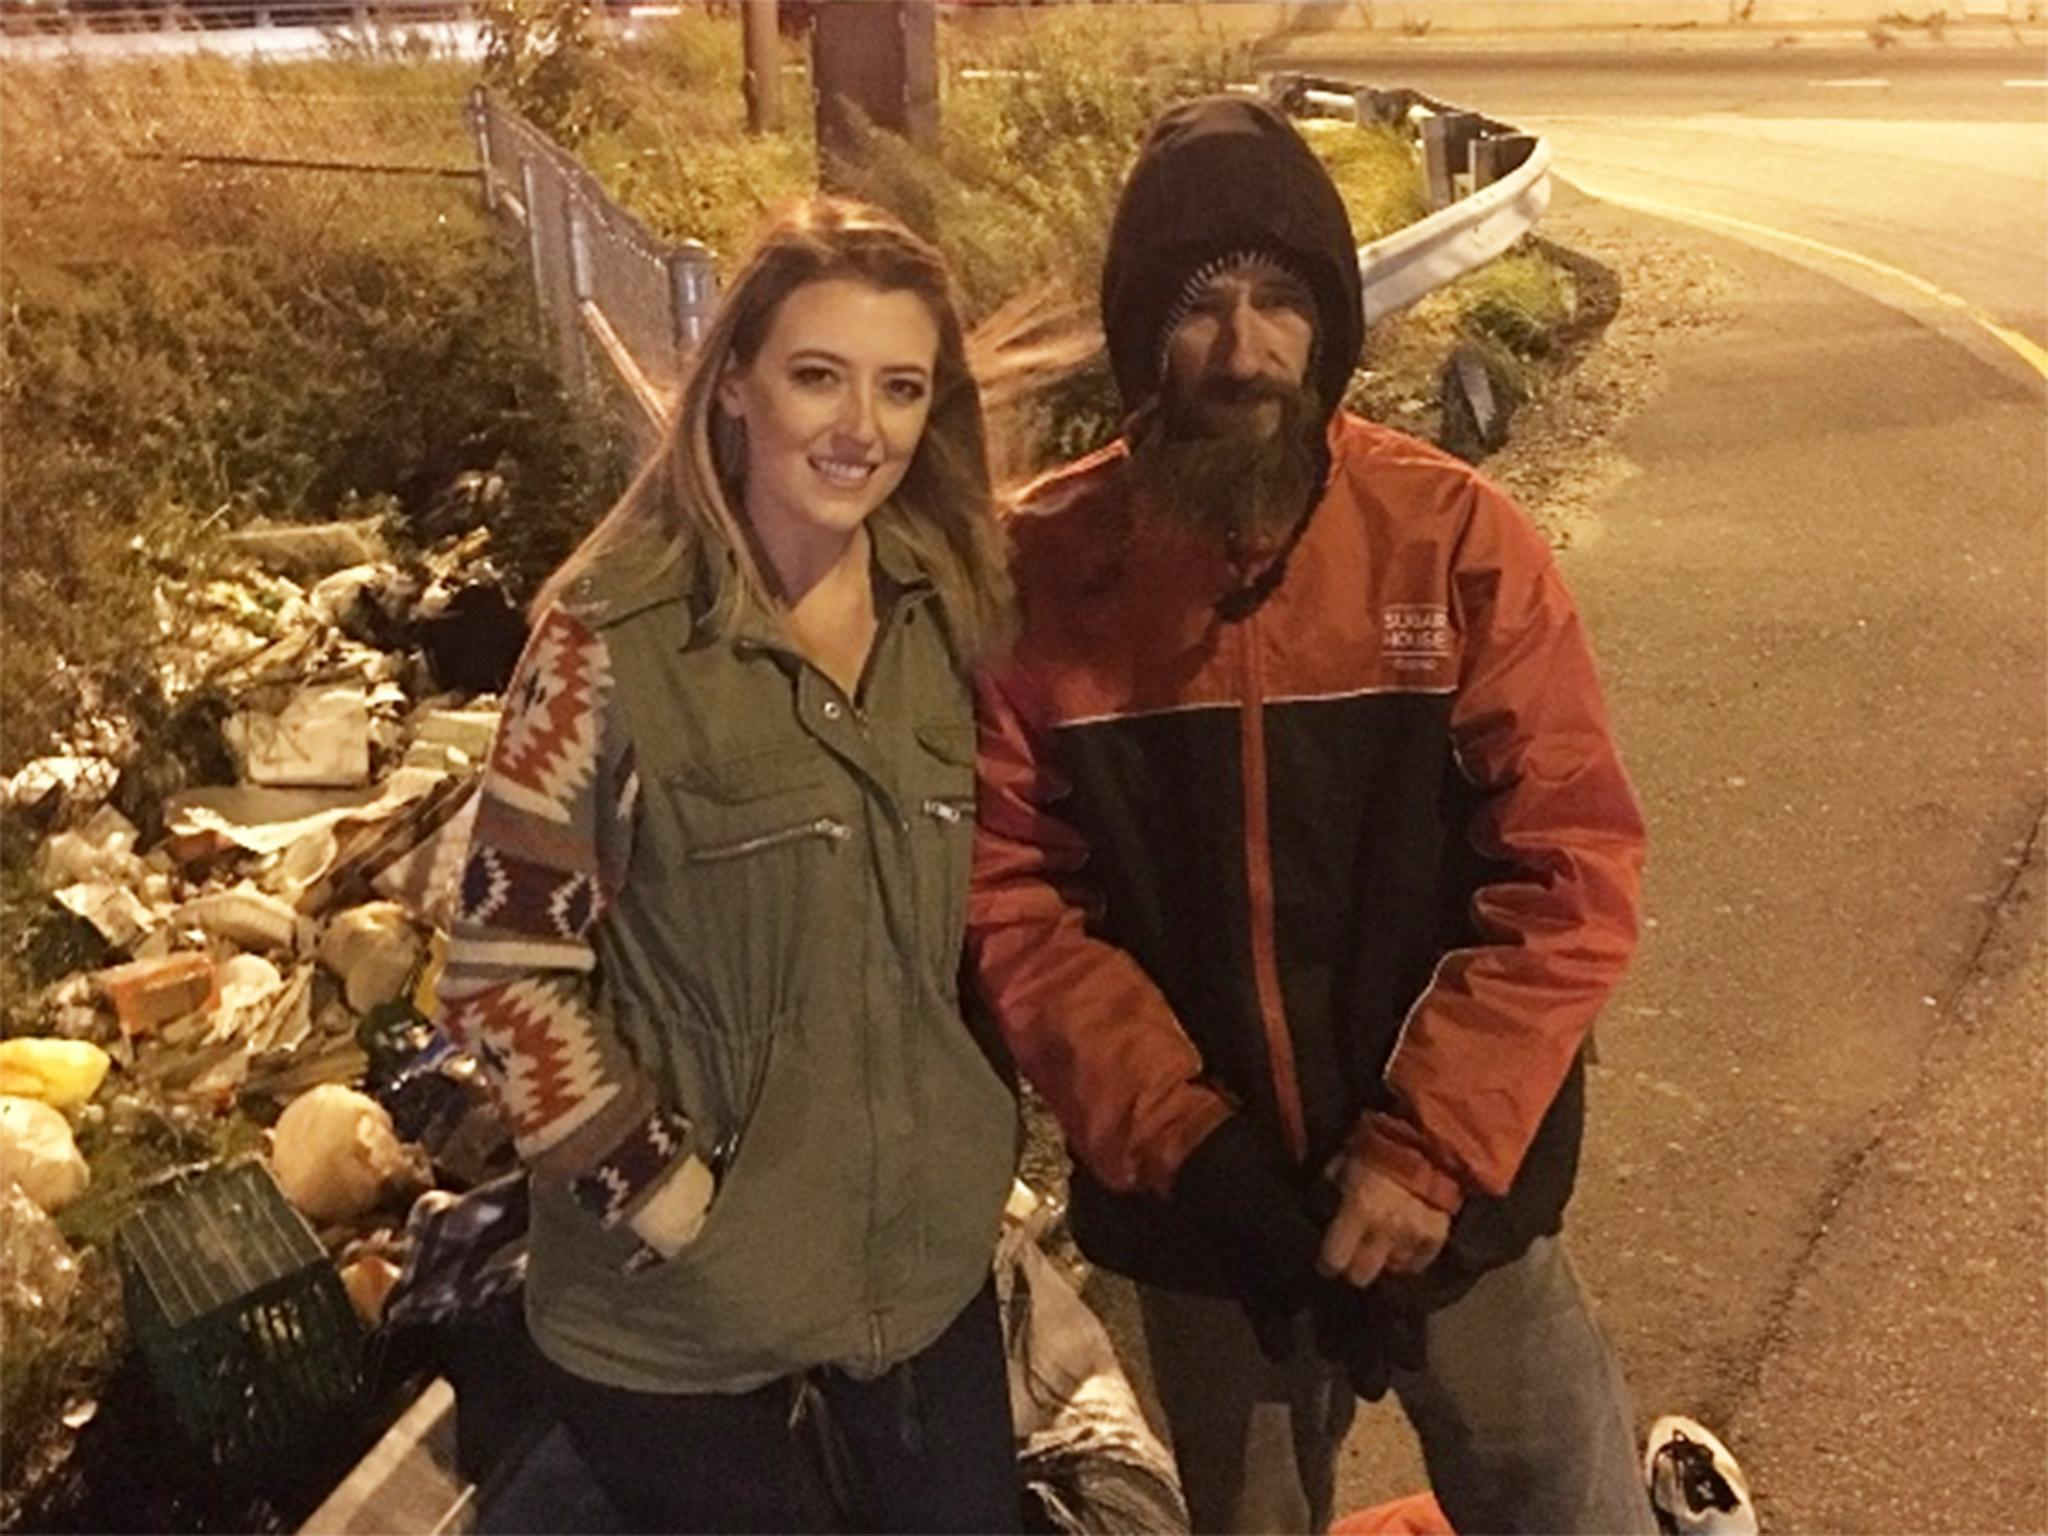 US woman raises more than $100,000 for homeless man who used last $20 to buy her petrol when she ran out